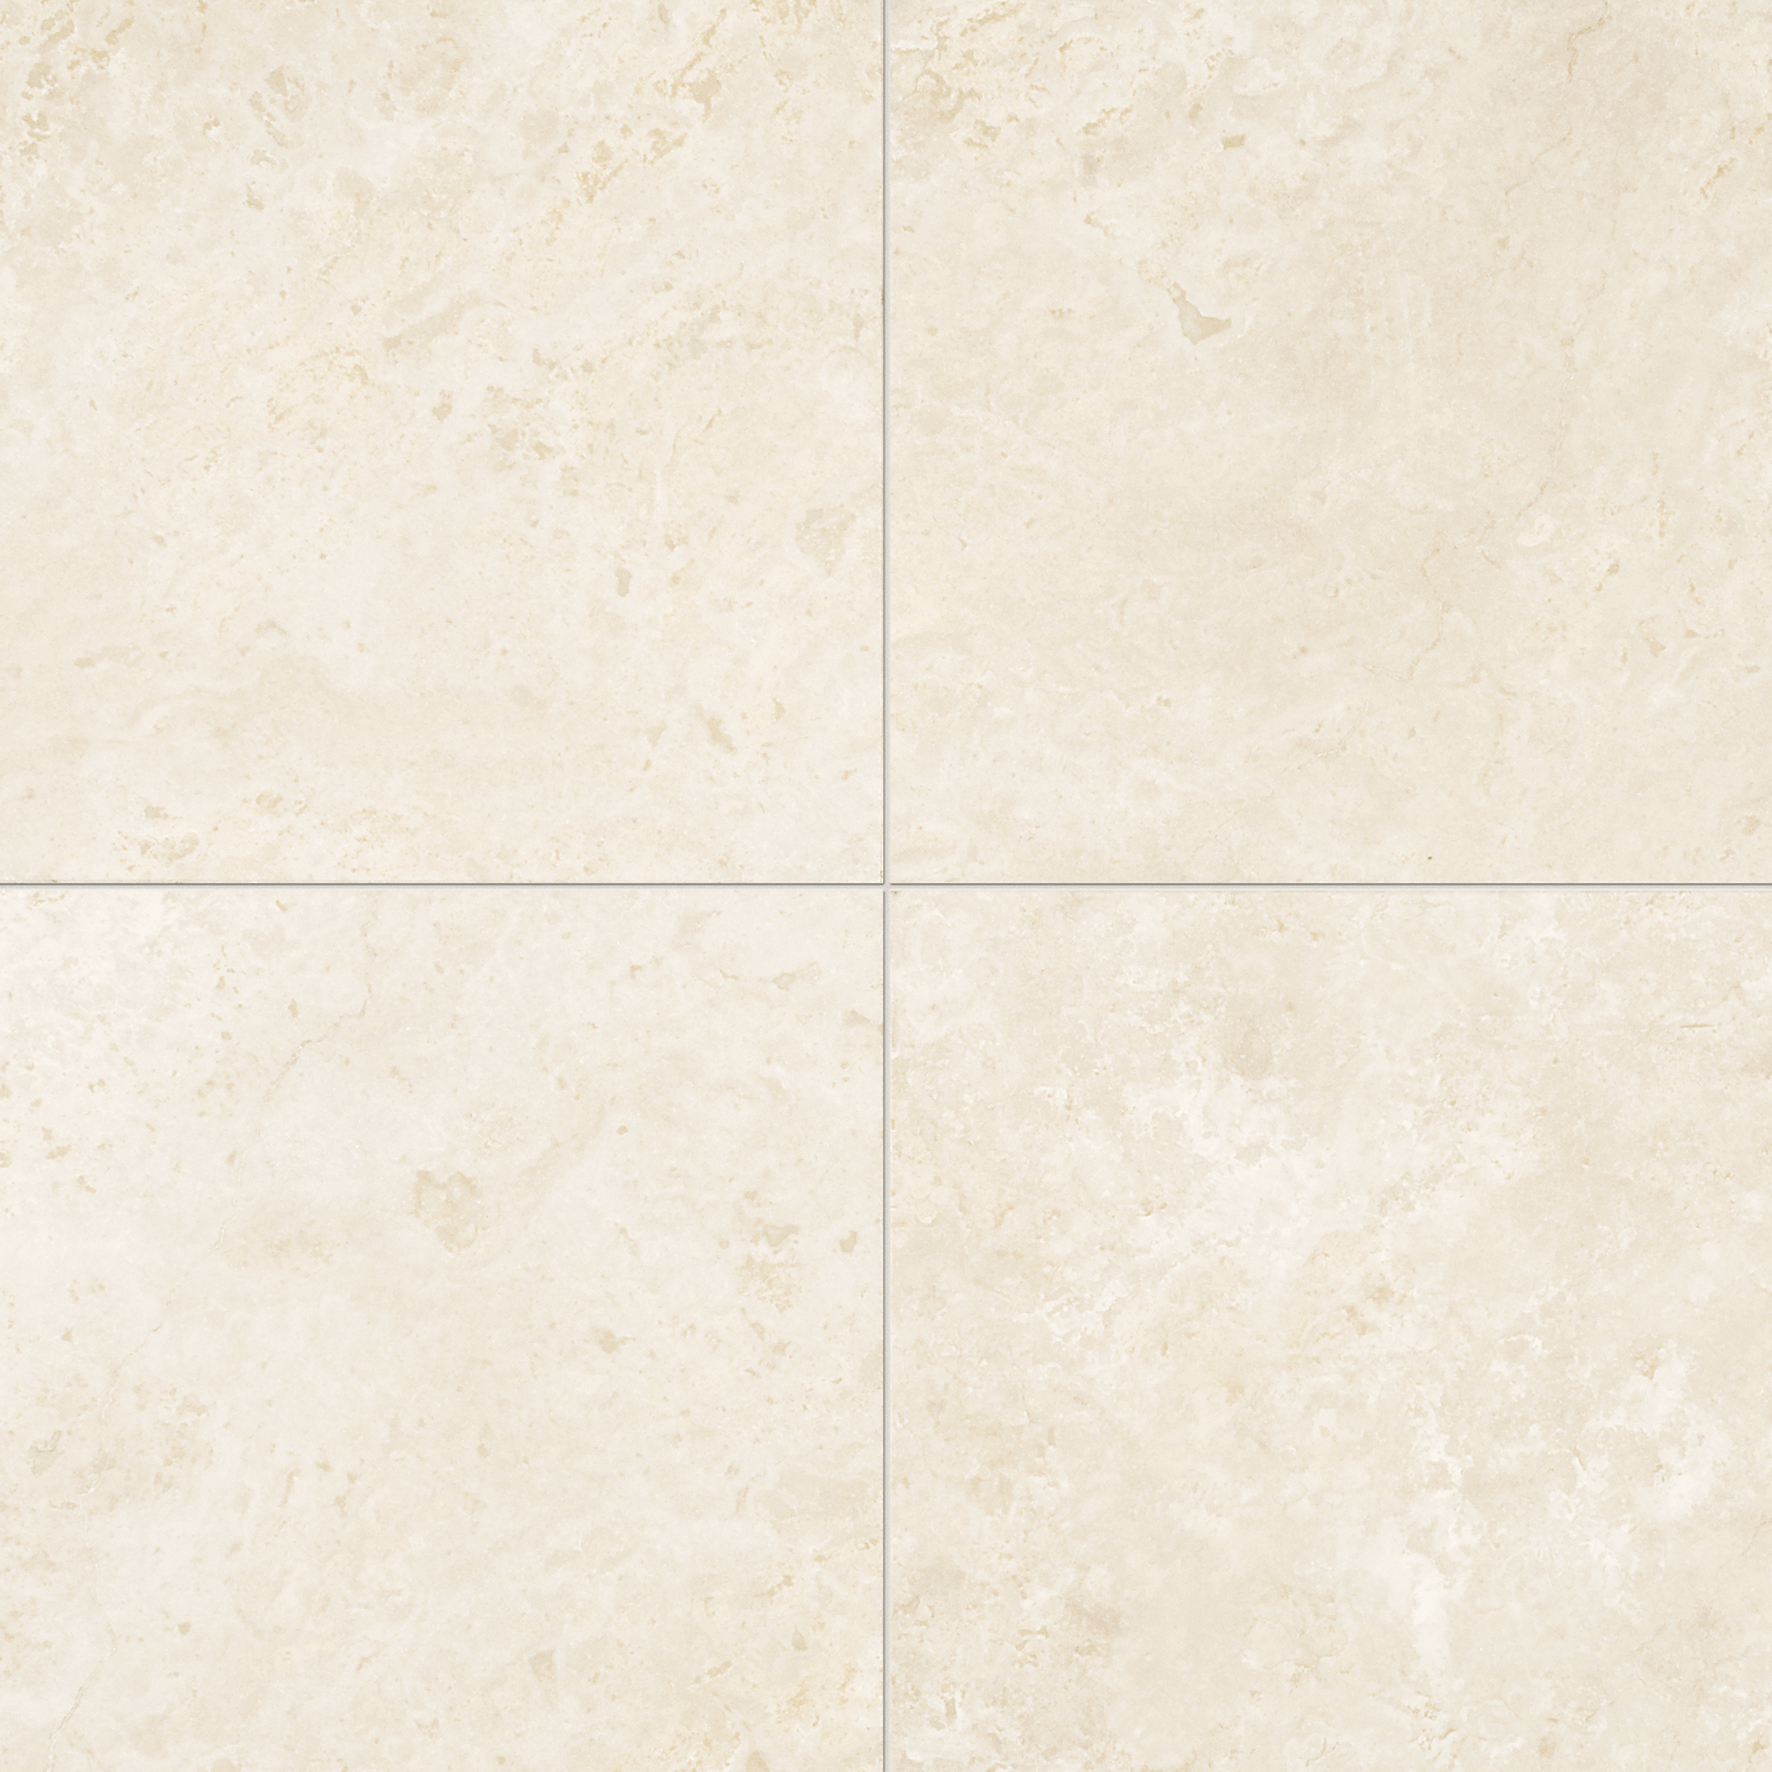 Ivory Light Honed and Filled Field Tile